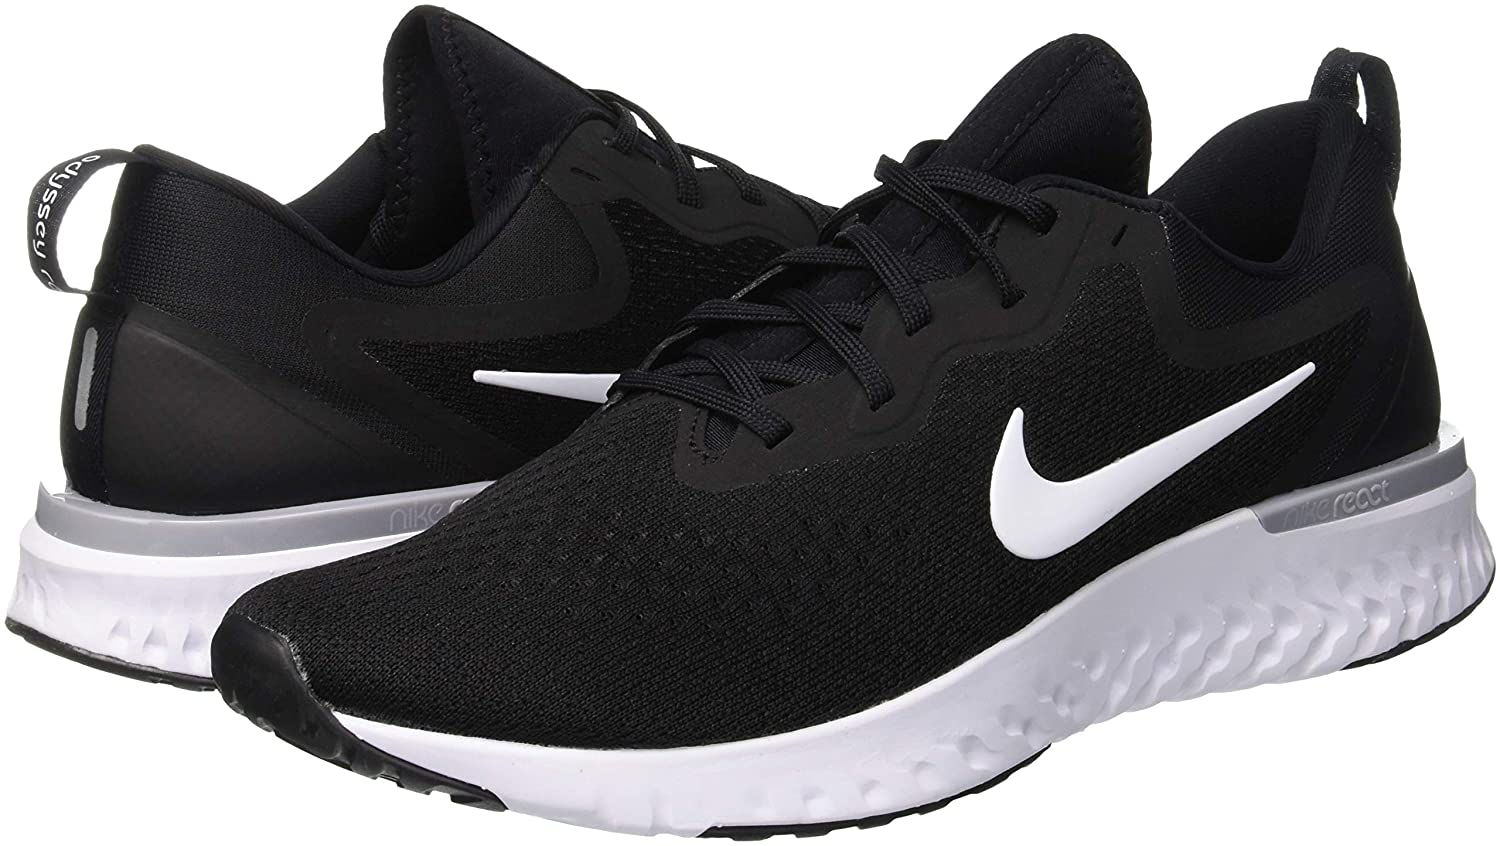 Nike Men s Odyssey React Black White-Wolf Grey Running Shoes  Buy Online at  Low Prices in India - Amazon.in 1b695797eb